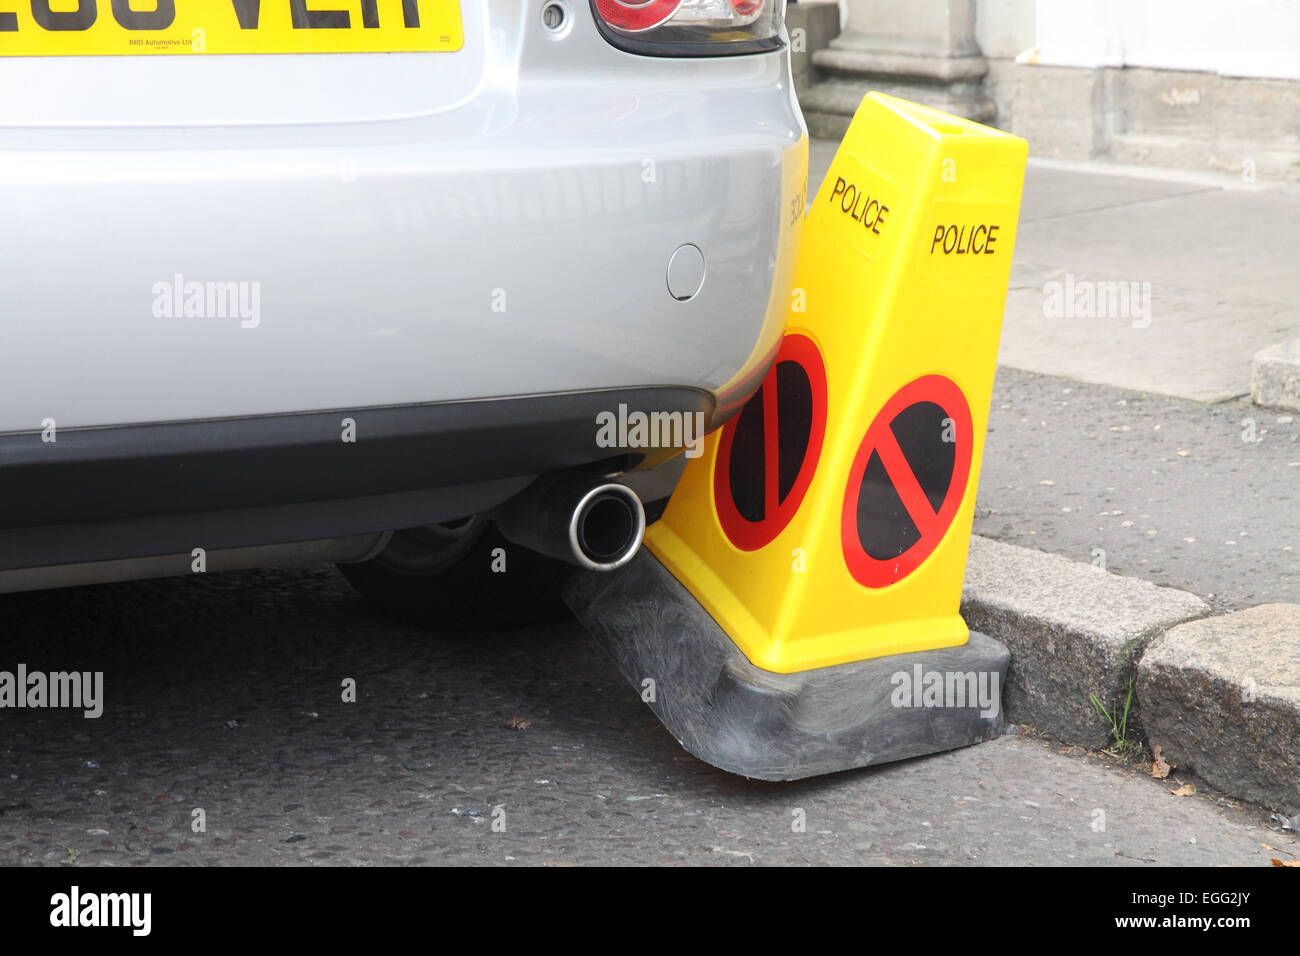 Car badly parked against a Police No Parking cone - Stock Image